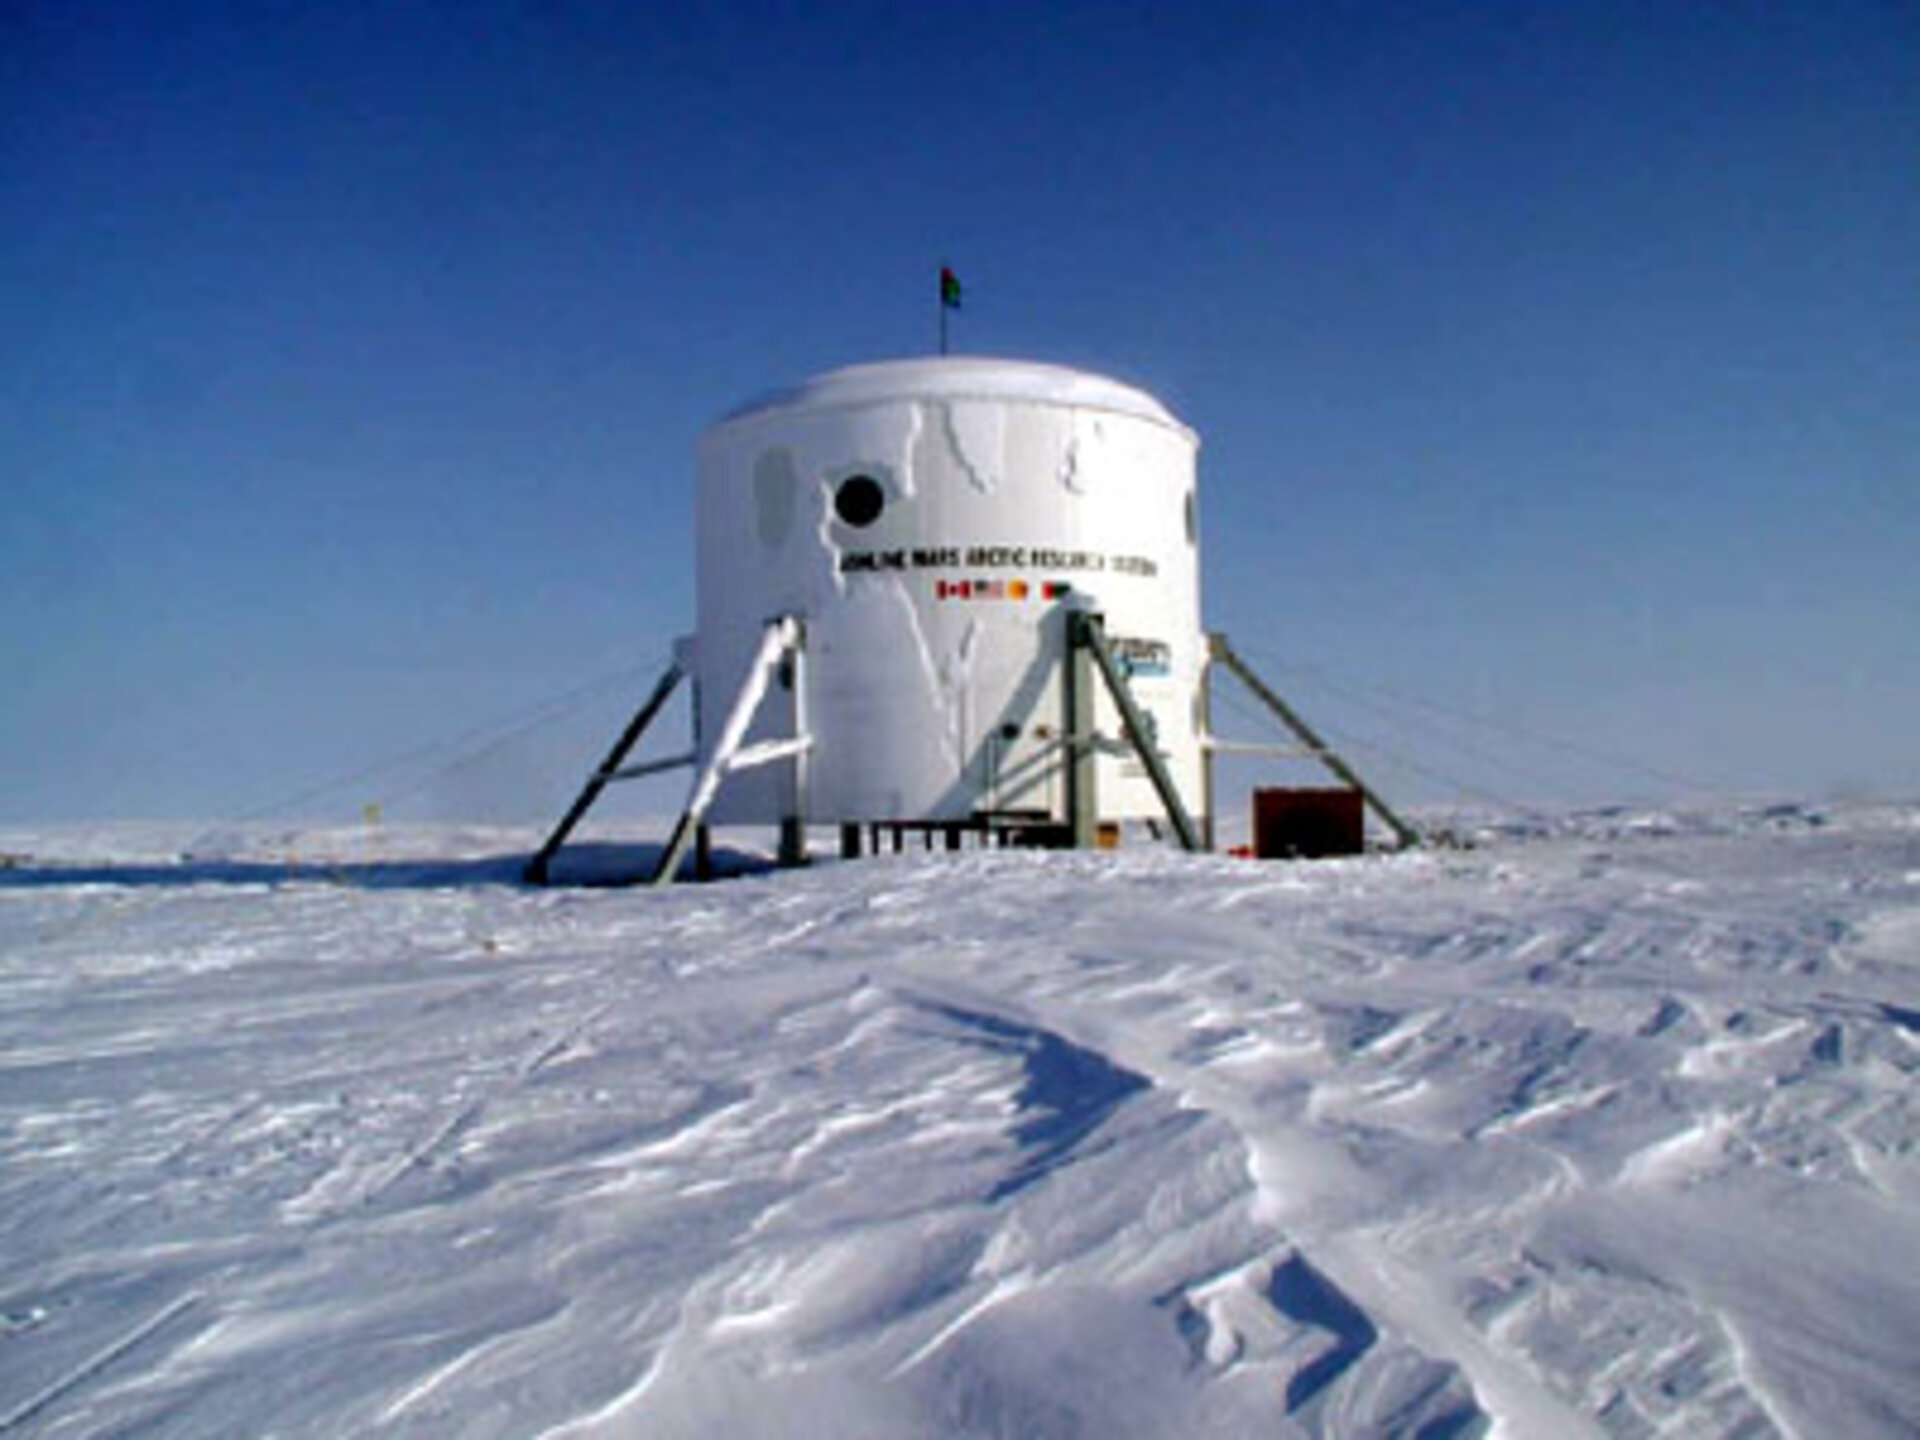 Mars Arctic Research Station